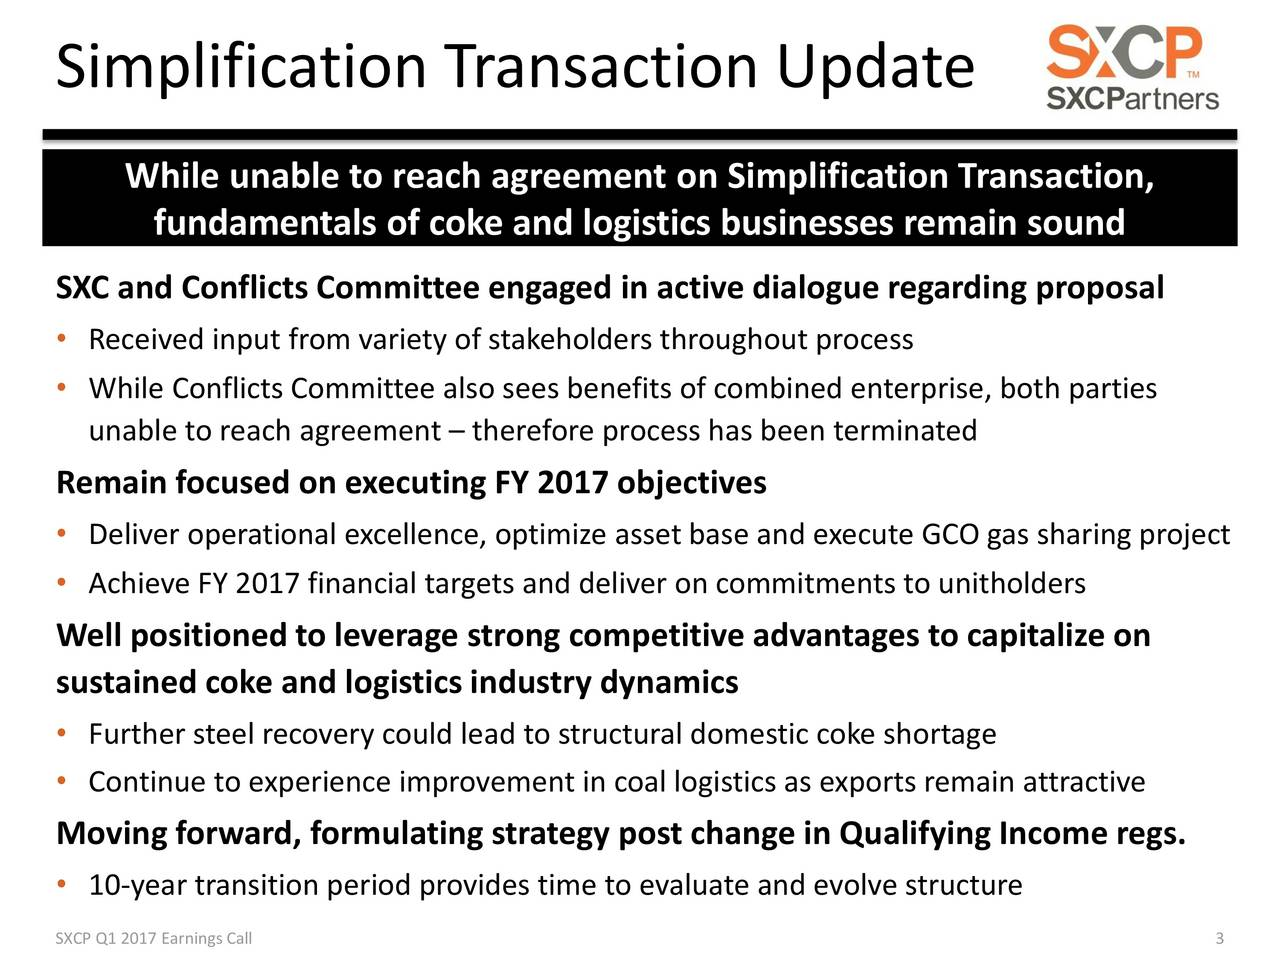 While unable to reach agreement on Simplification Transaction, fundamentals of coke and logistics businesses remain sound SXC and Conflicts Committee engaged in active dialogue regarding proposal Received input from variety of stakeholders throughout process While Conflicts Committee also sees benefits of combined enterprise, both parties unable to reach agreement  therefore process has been terminated Remain focused on executing FY 2017 objectives Deliver operational excellence, optimize asset base and execute GCO gas sharing project Achieve FY 2017 financial targets and deliver on commitments to unitholders Well positioned to leverage strong competitive advantages to capitalize on sustained coke and logistics industry dynamics Further steel recovery could lead to structural domestic coke shortage Continue to experience improvement in coal logistics as exports remain attractive Moving forward, formulating strategy post change in Qualifying Income regs. 10-year transition period provides time to evaluate and evolve structure